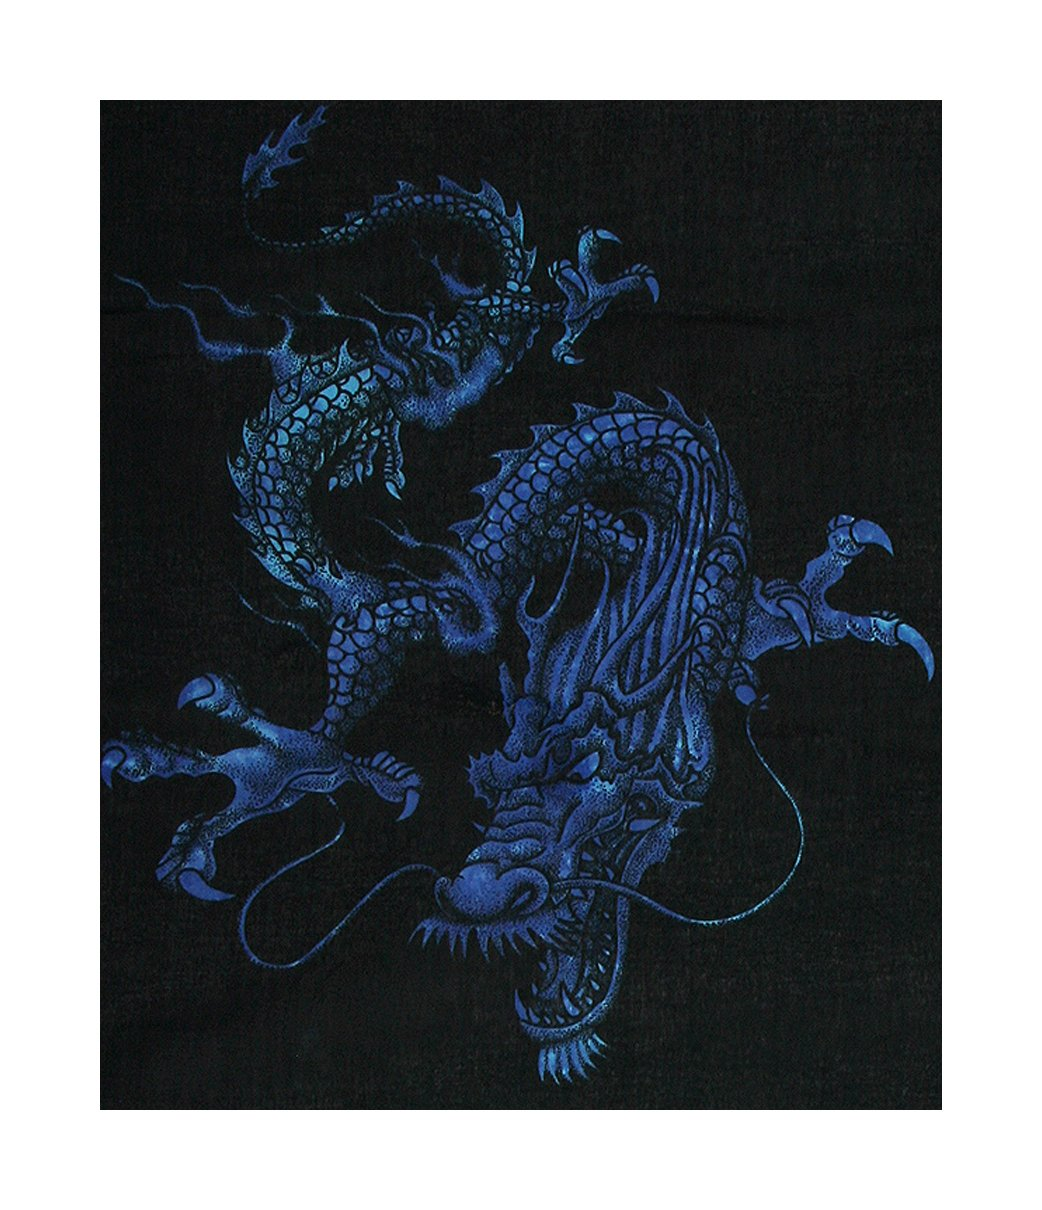 Sarong - Blue on Black, Dragons, Less Than Perfect, Reduced